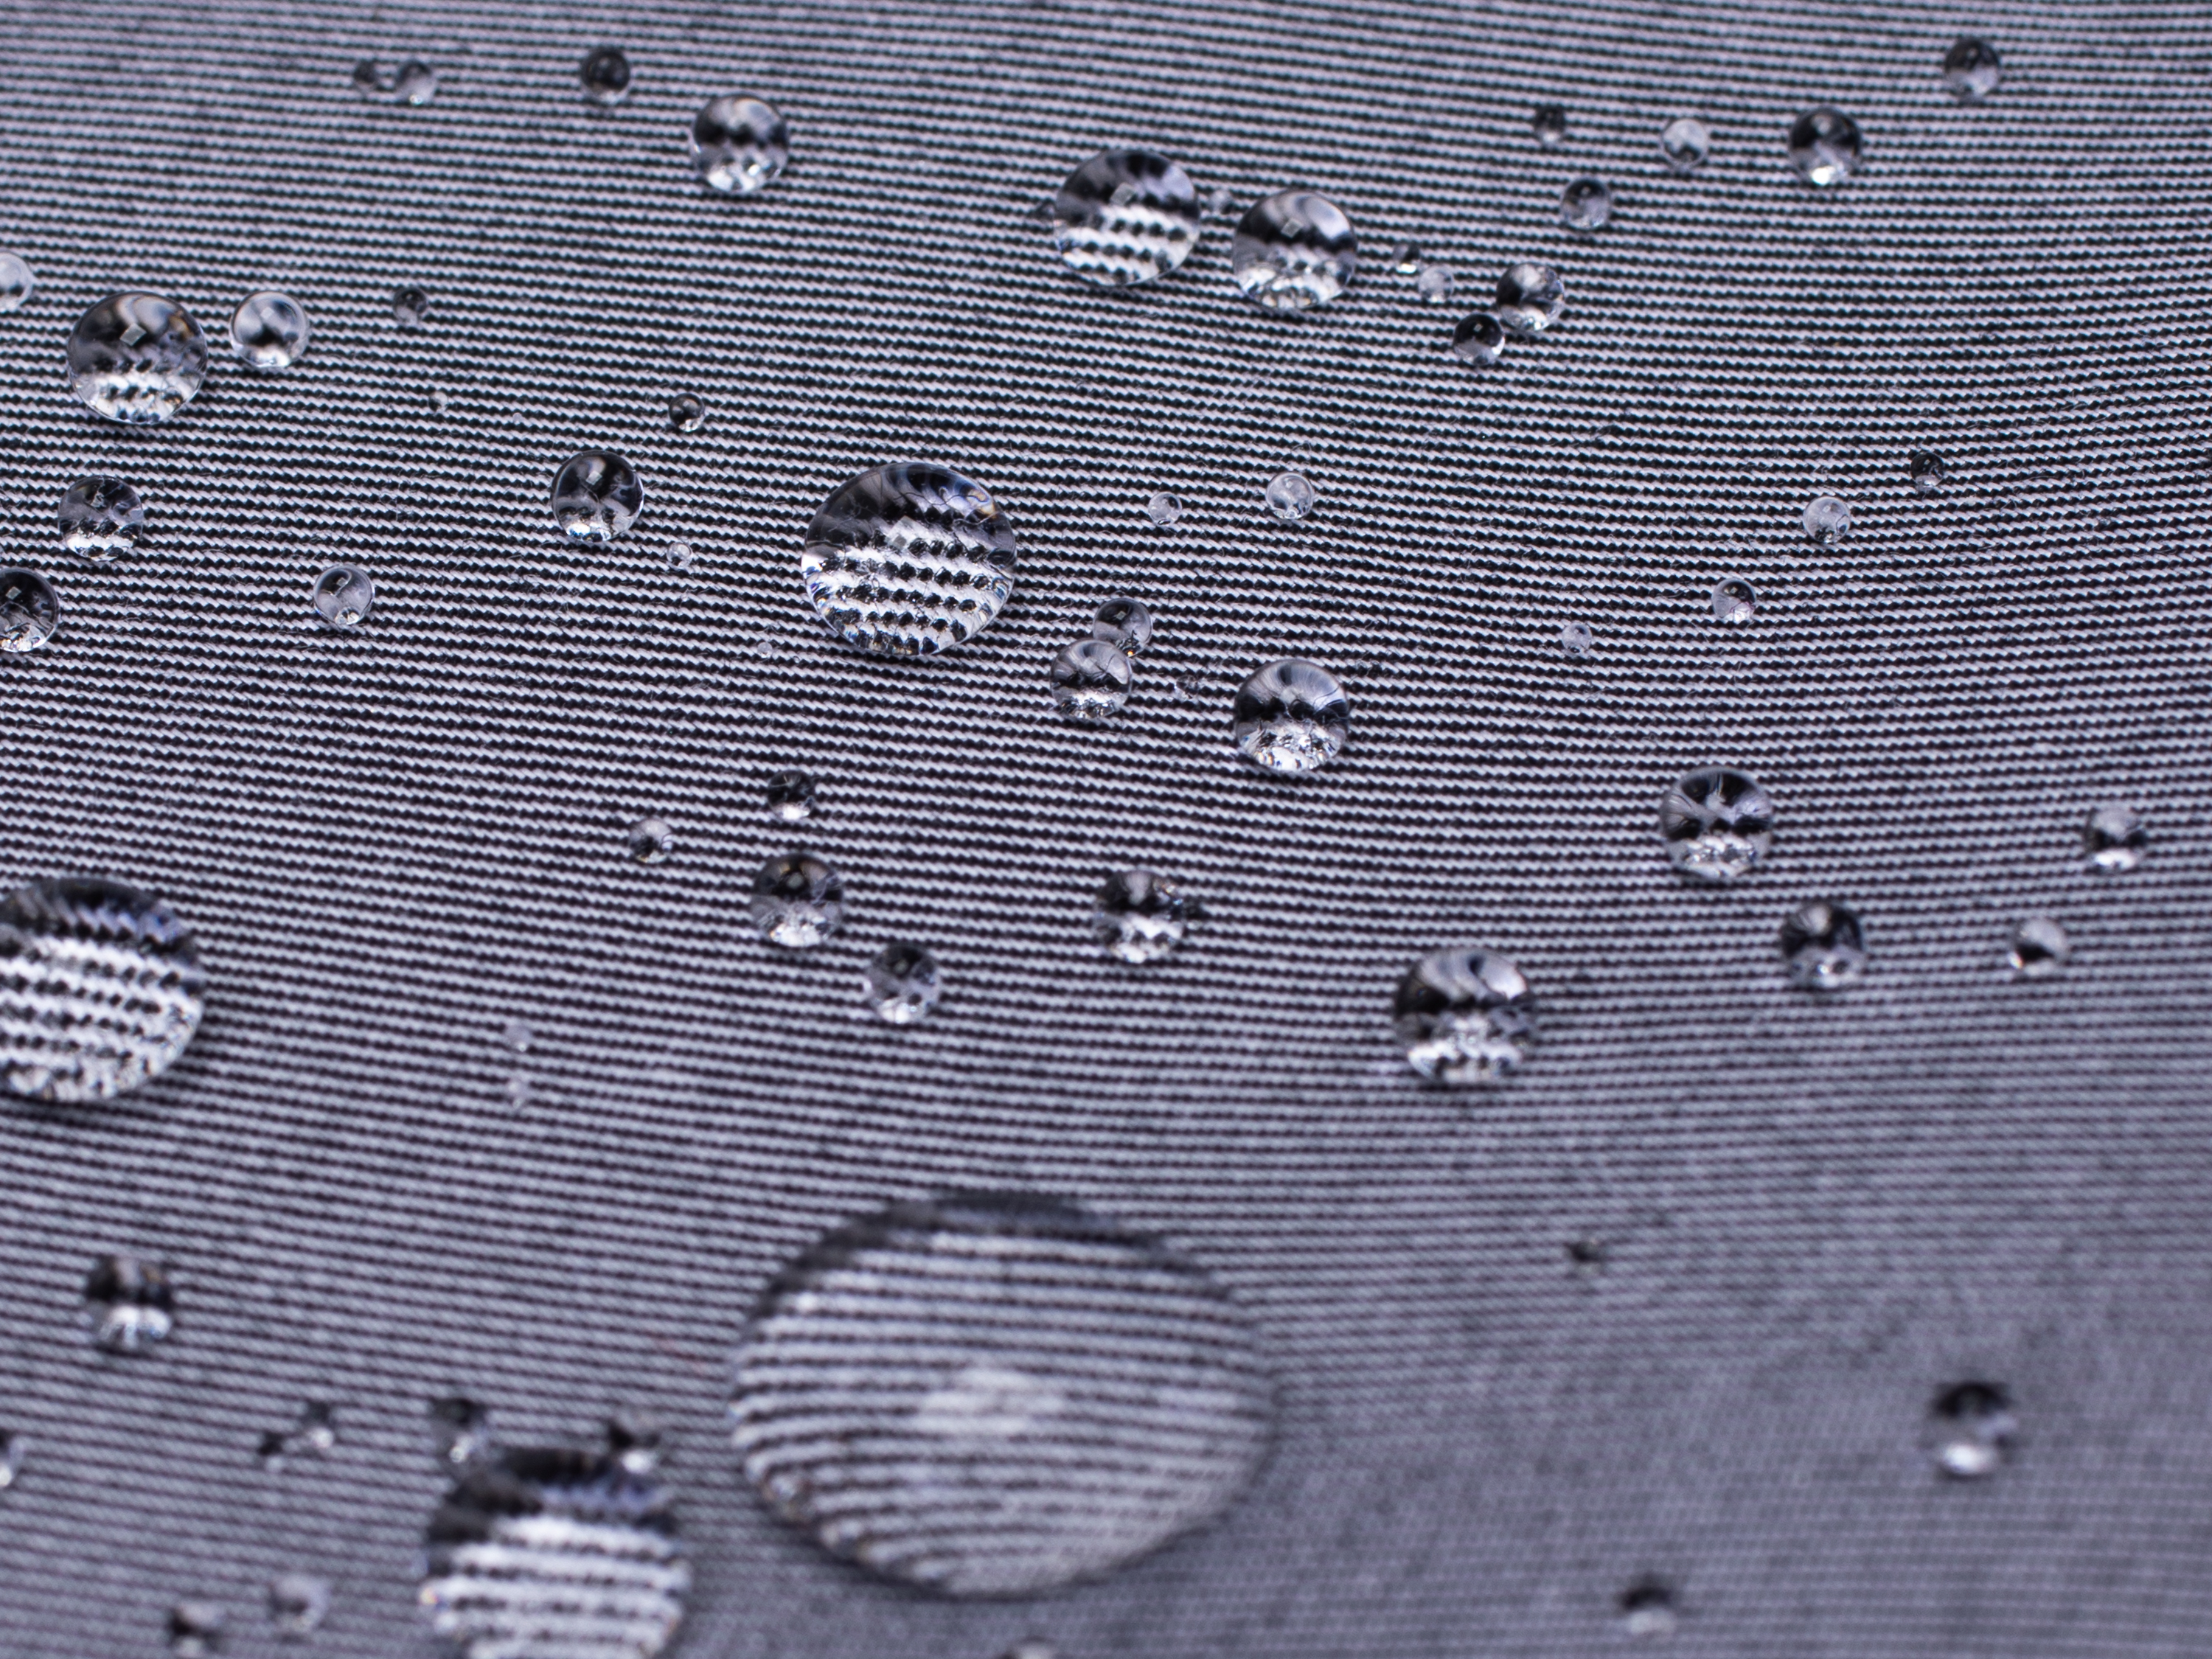 Buy tailor made shirts online - NANO X WATER RESISTANT  - NANO Grey